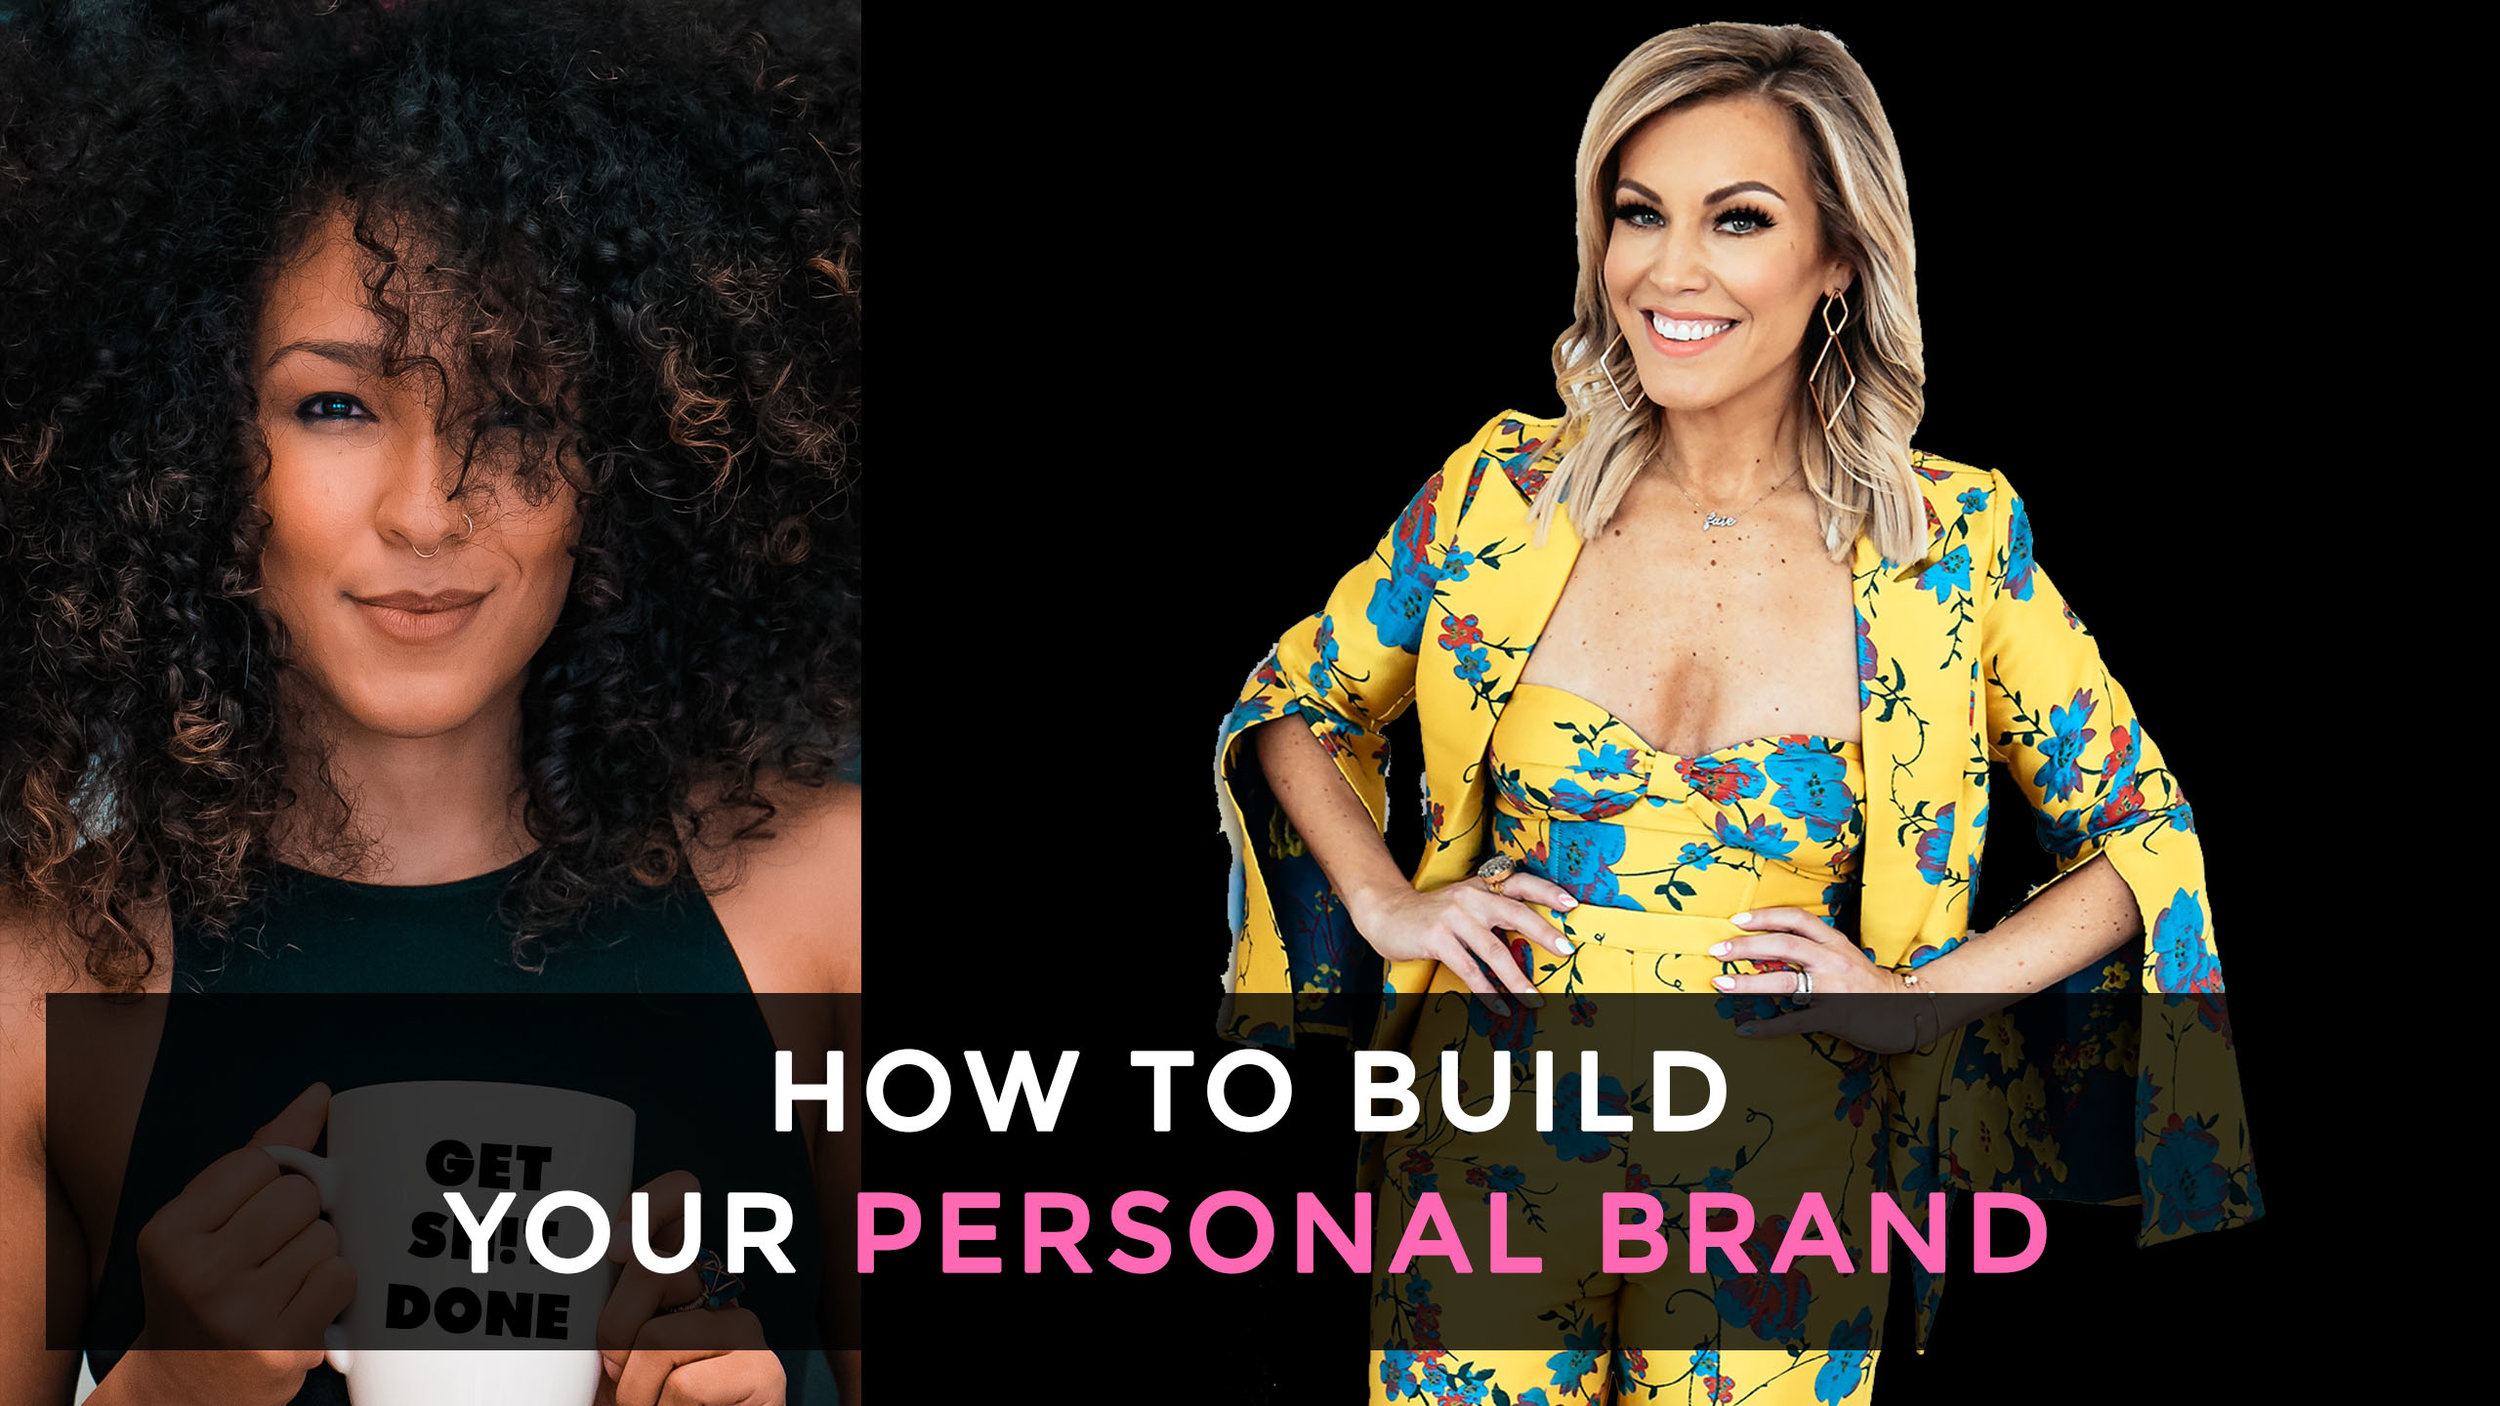 Building brand awareness is essential for the growth of most startups. However, the majority of founders can't pay-to-play in the early stages. One way around this is leveraging your personal brand through speaking gigs, blogging, social media, etc. Learn how to Build Your Personal Brand with Jessica Zweig, Founder & CEO of SimplyBe.    WATCH NOW   ( Will be available in podcast format soon!)